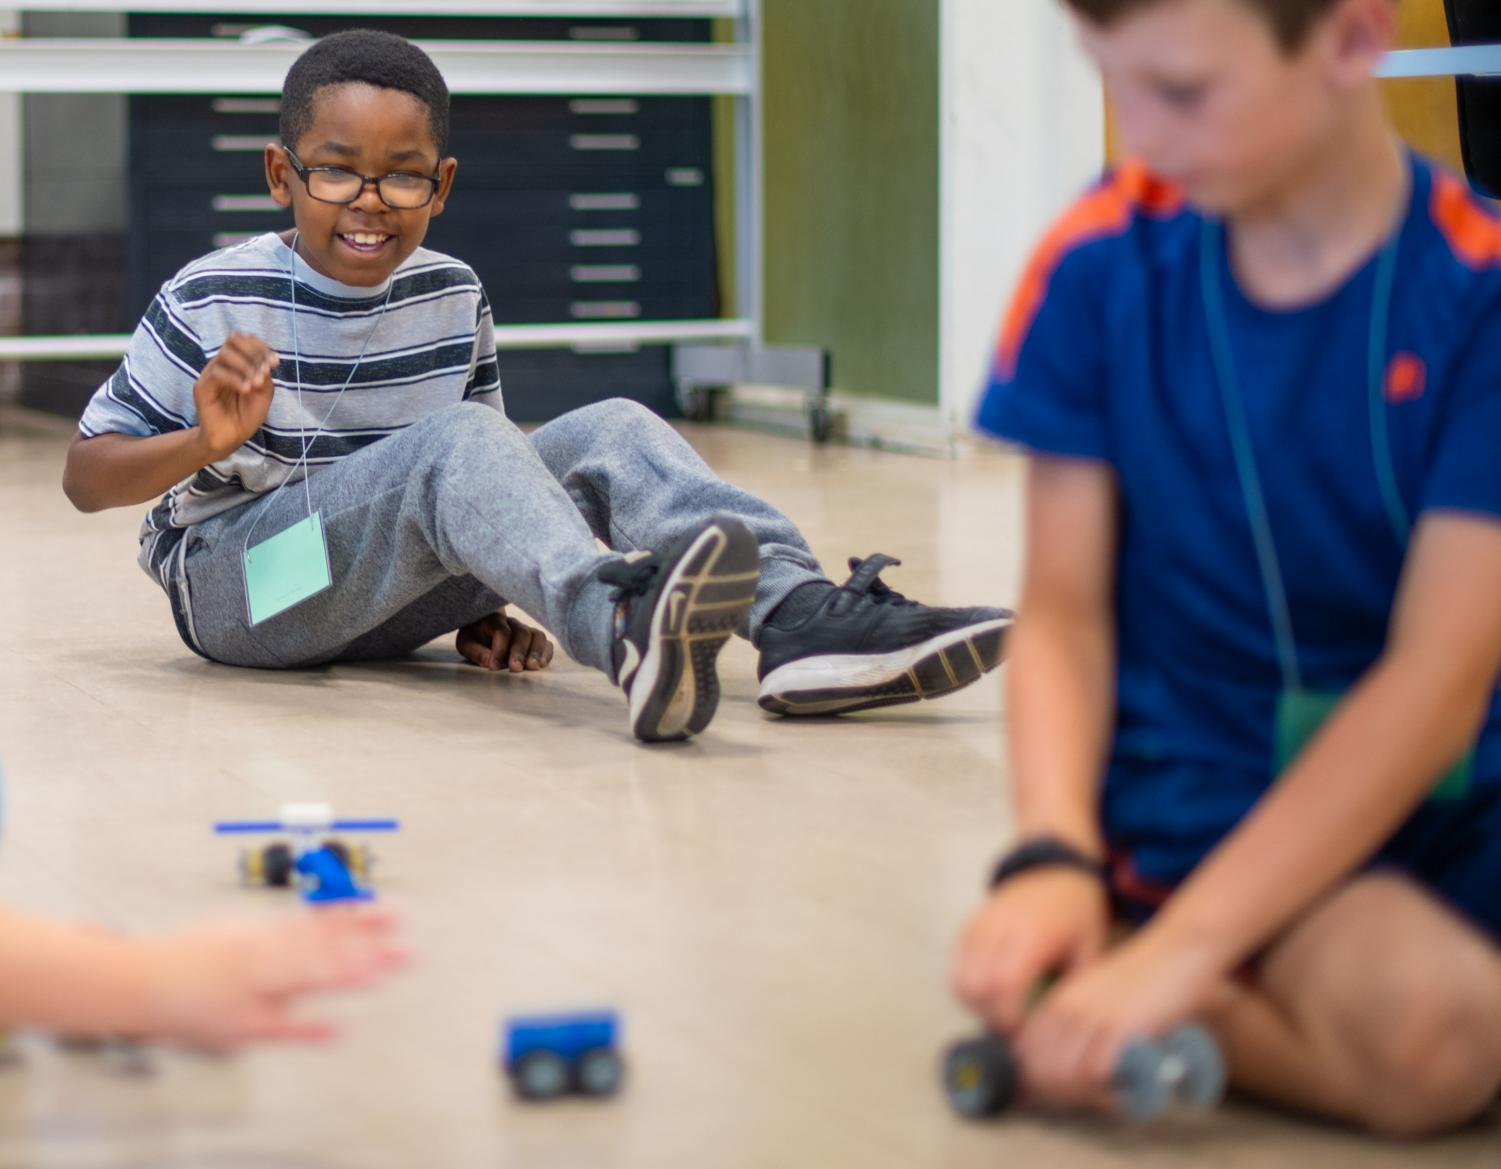 JaVon+Adams+races+his+LEGO+car+during+the+Advanced+Engineering+LEGO+Camp+on+Tuesday%2C+July+9%2C+2019+inside+Quigley+Hall.+The+camp+is+for+children+entering+3rd%2C+4th+and+5th+grade.+During+the+five+day+camp+children+will+complete+projects+that+explore+energy+supply%2C+transfer%2C+accumulation%2C+conversation+and+consumption.+